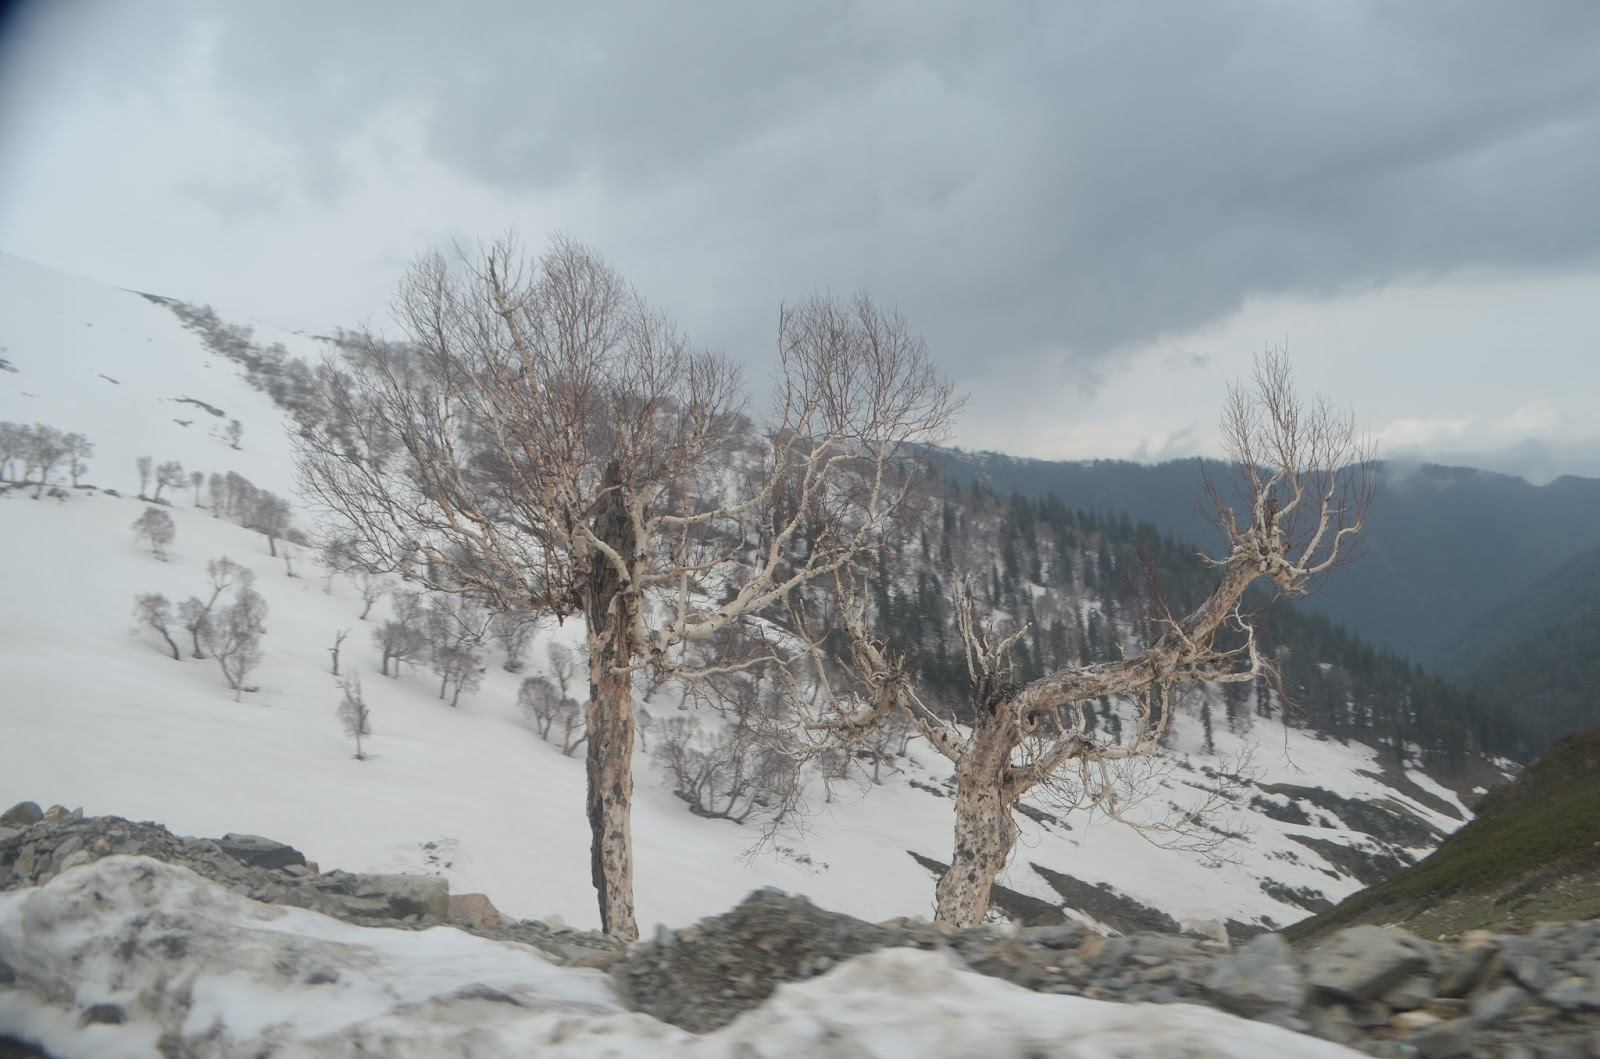 On the way to Sinthan Top